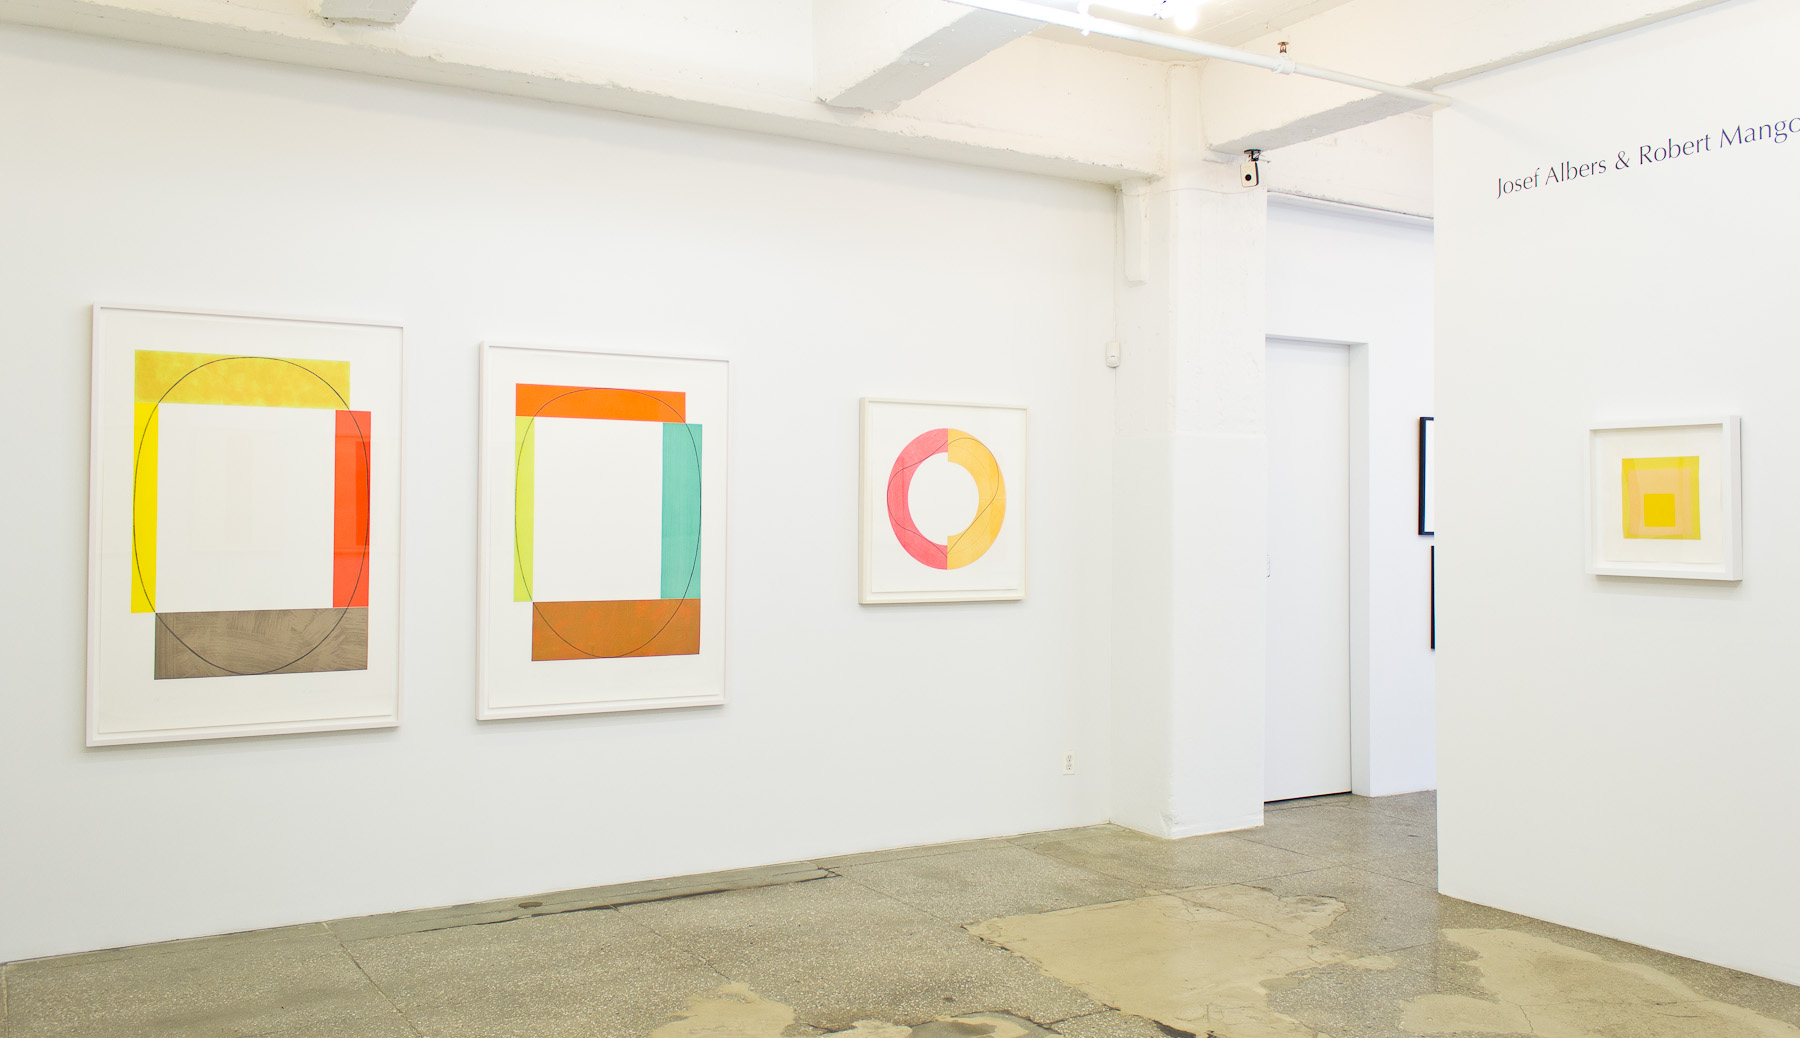 Installation View Josef Albers and Robert Mangold: The Essence of Form